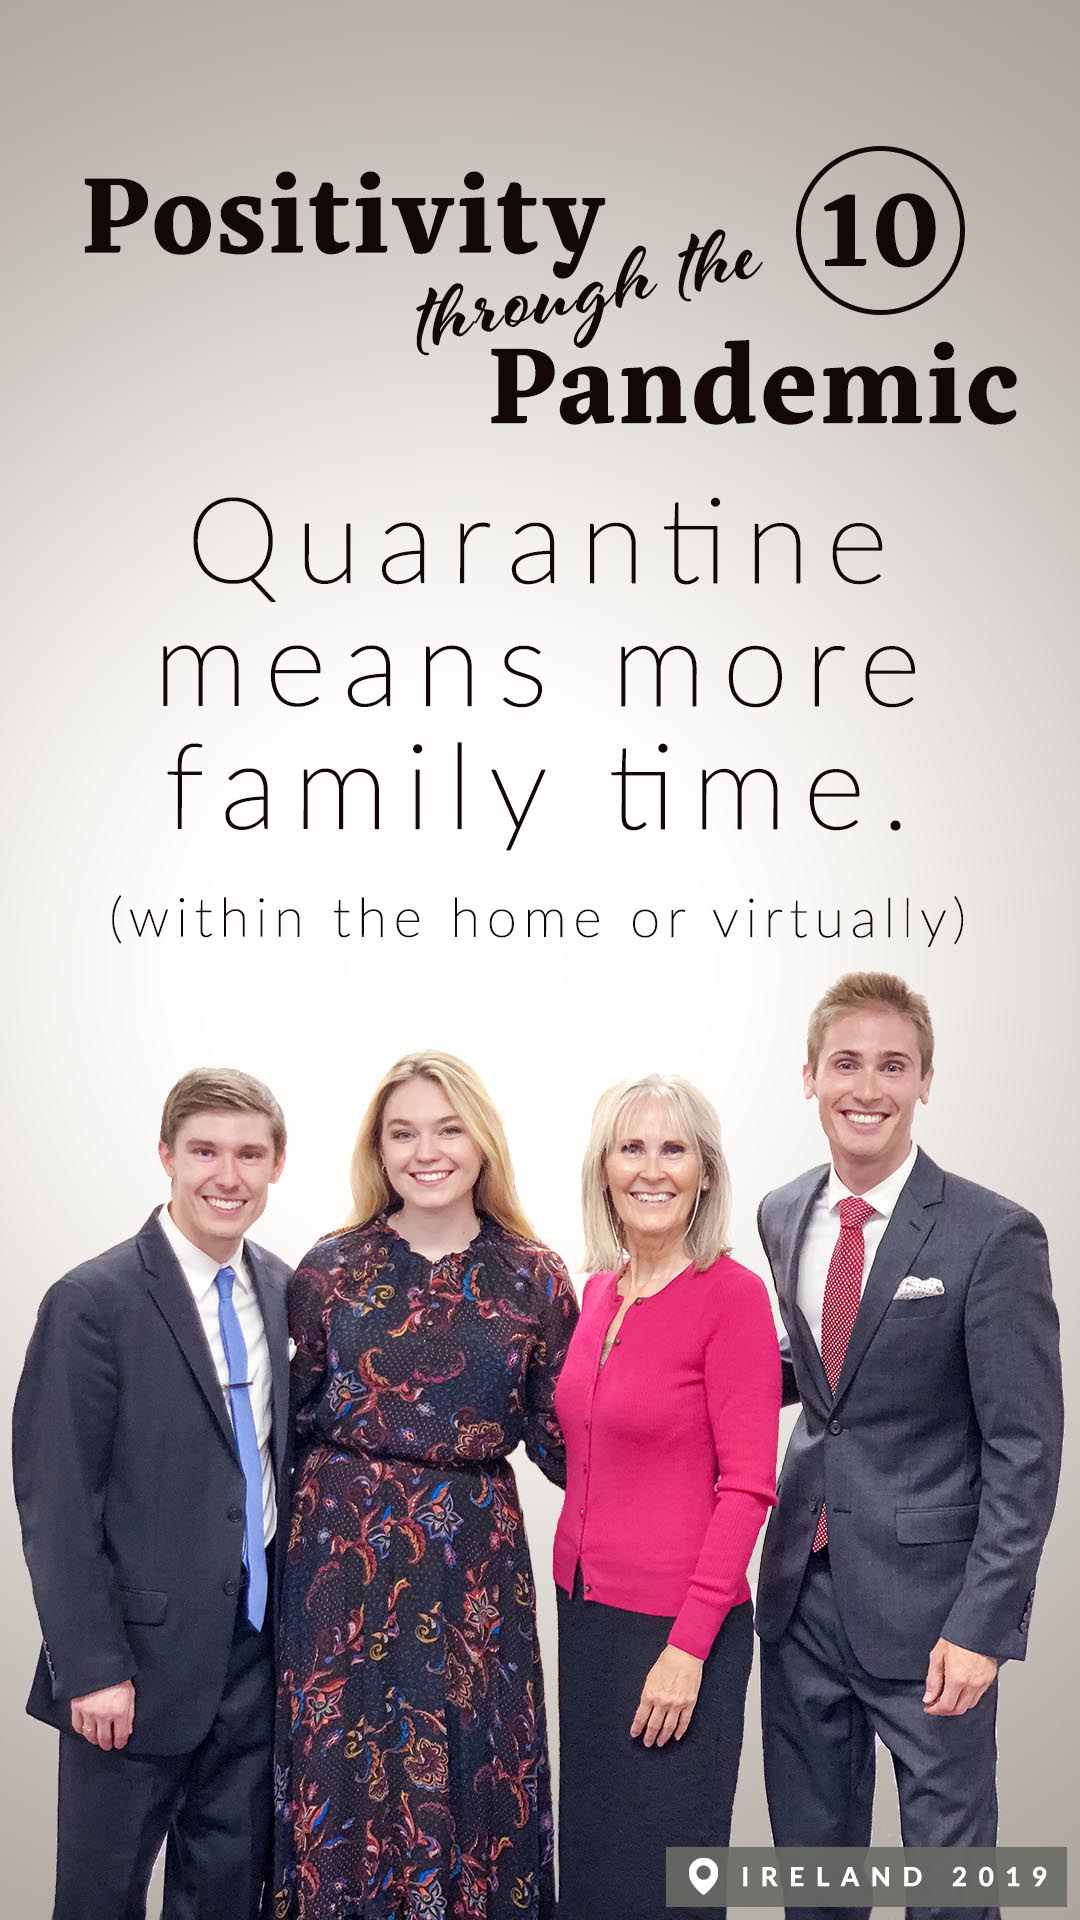 Positivity through the Pandemic #10: Quarantine means more family time